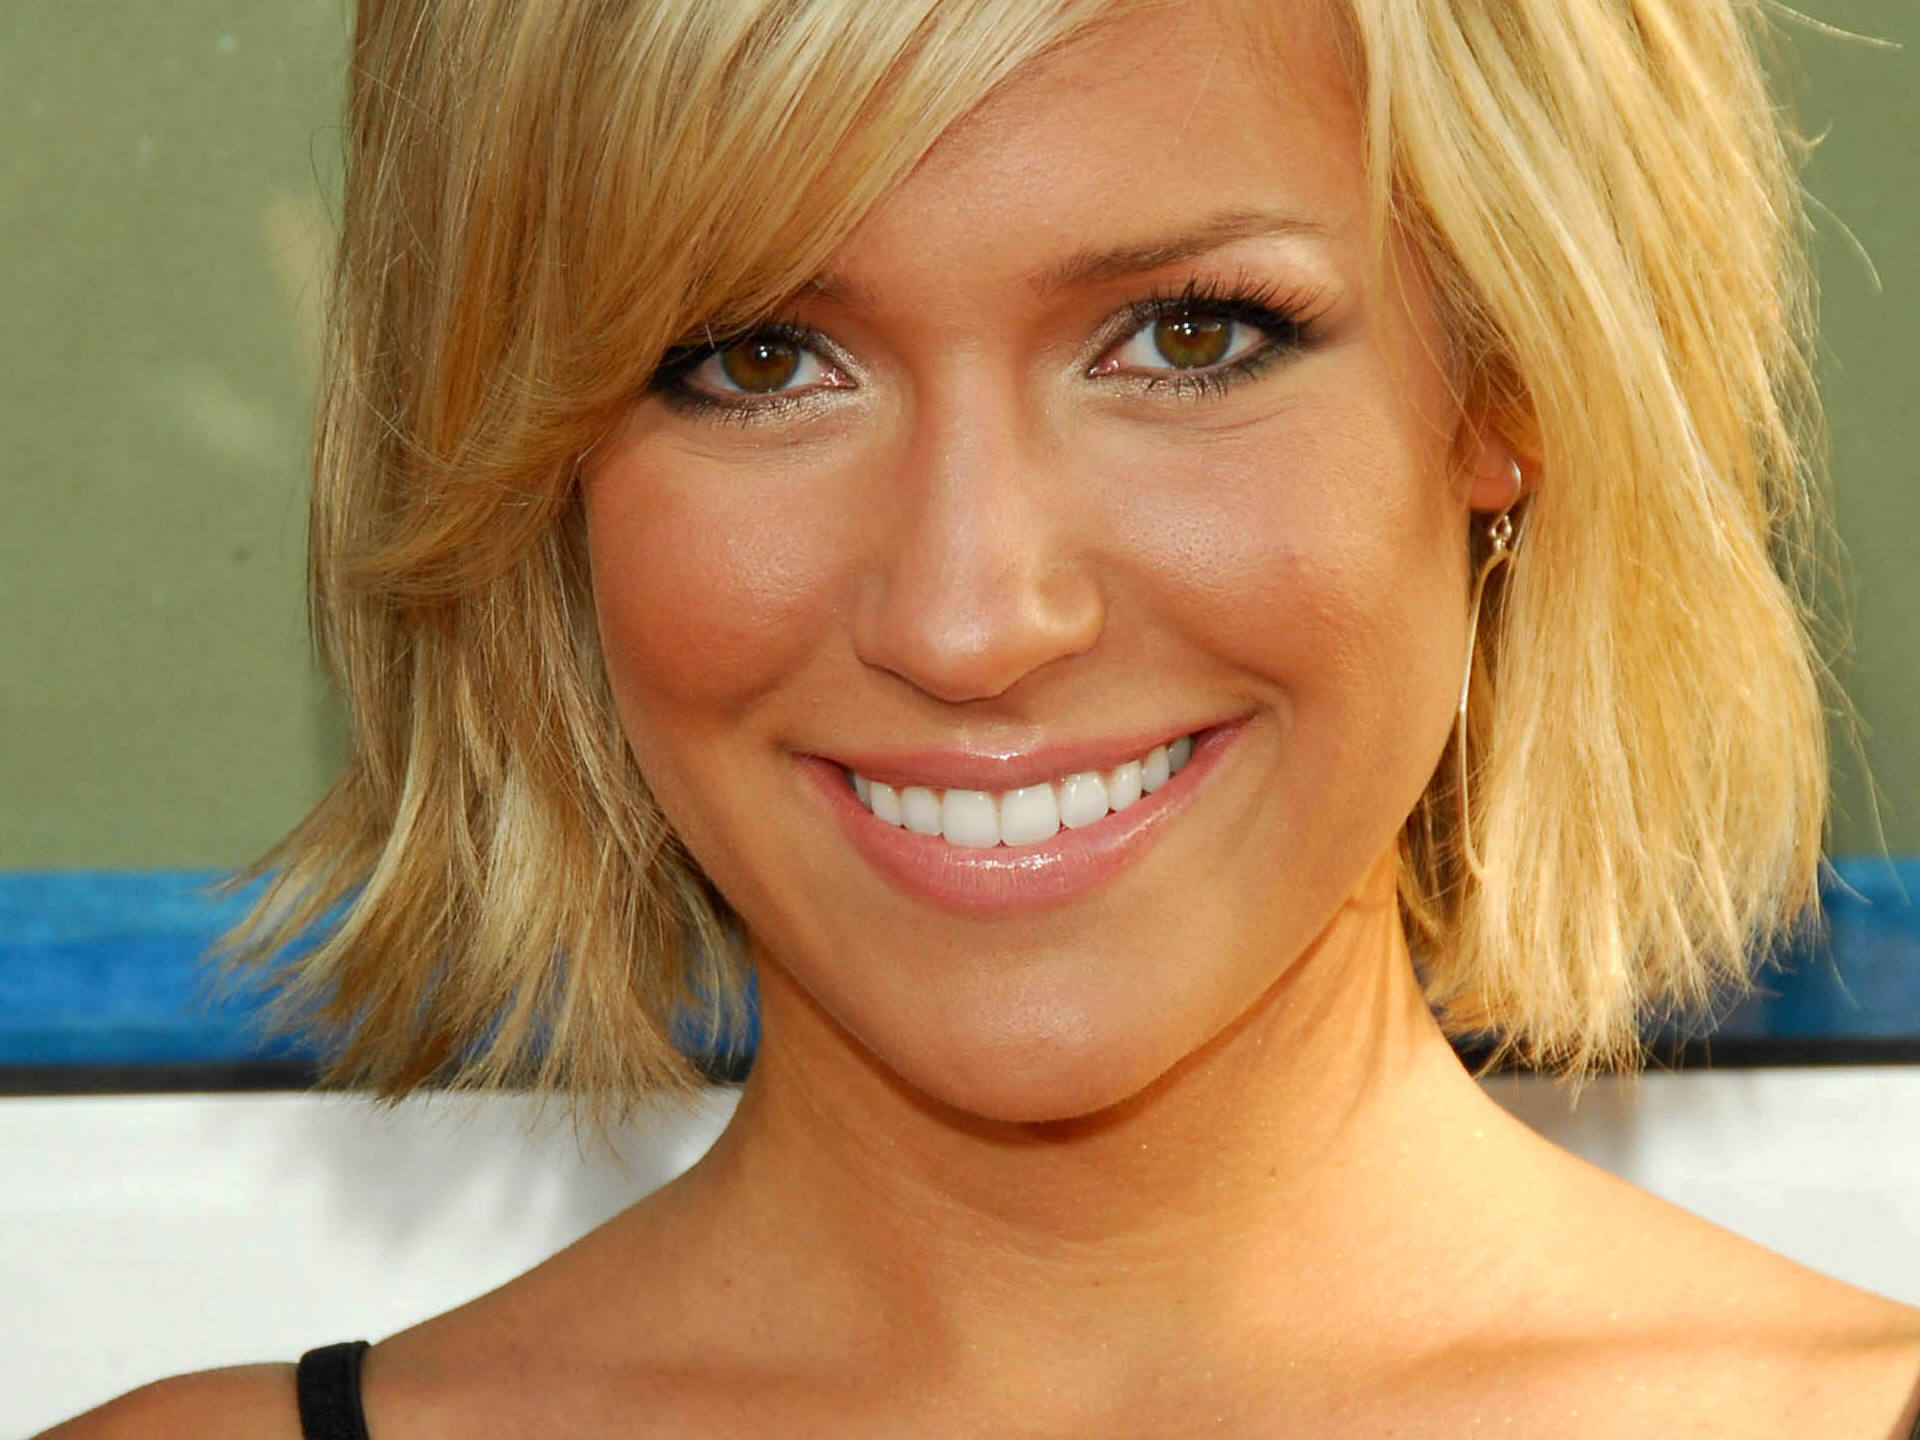 kristin cavallari wallpapers kristin cavallari wallpaper download 1235